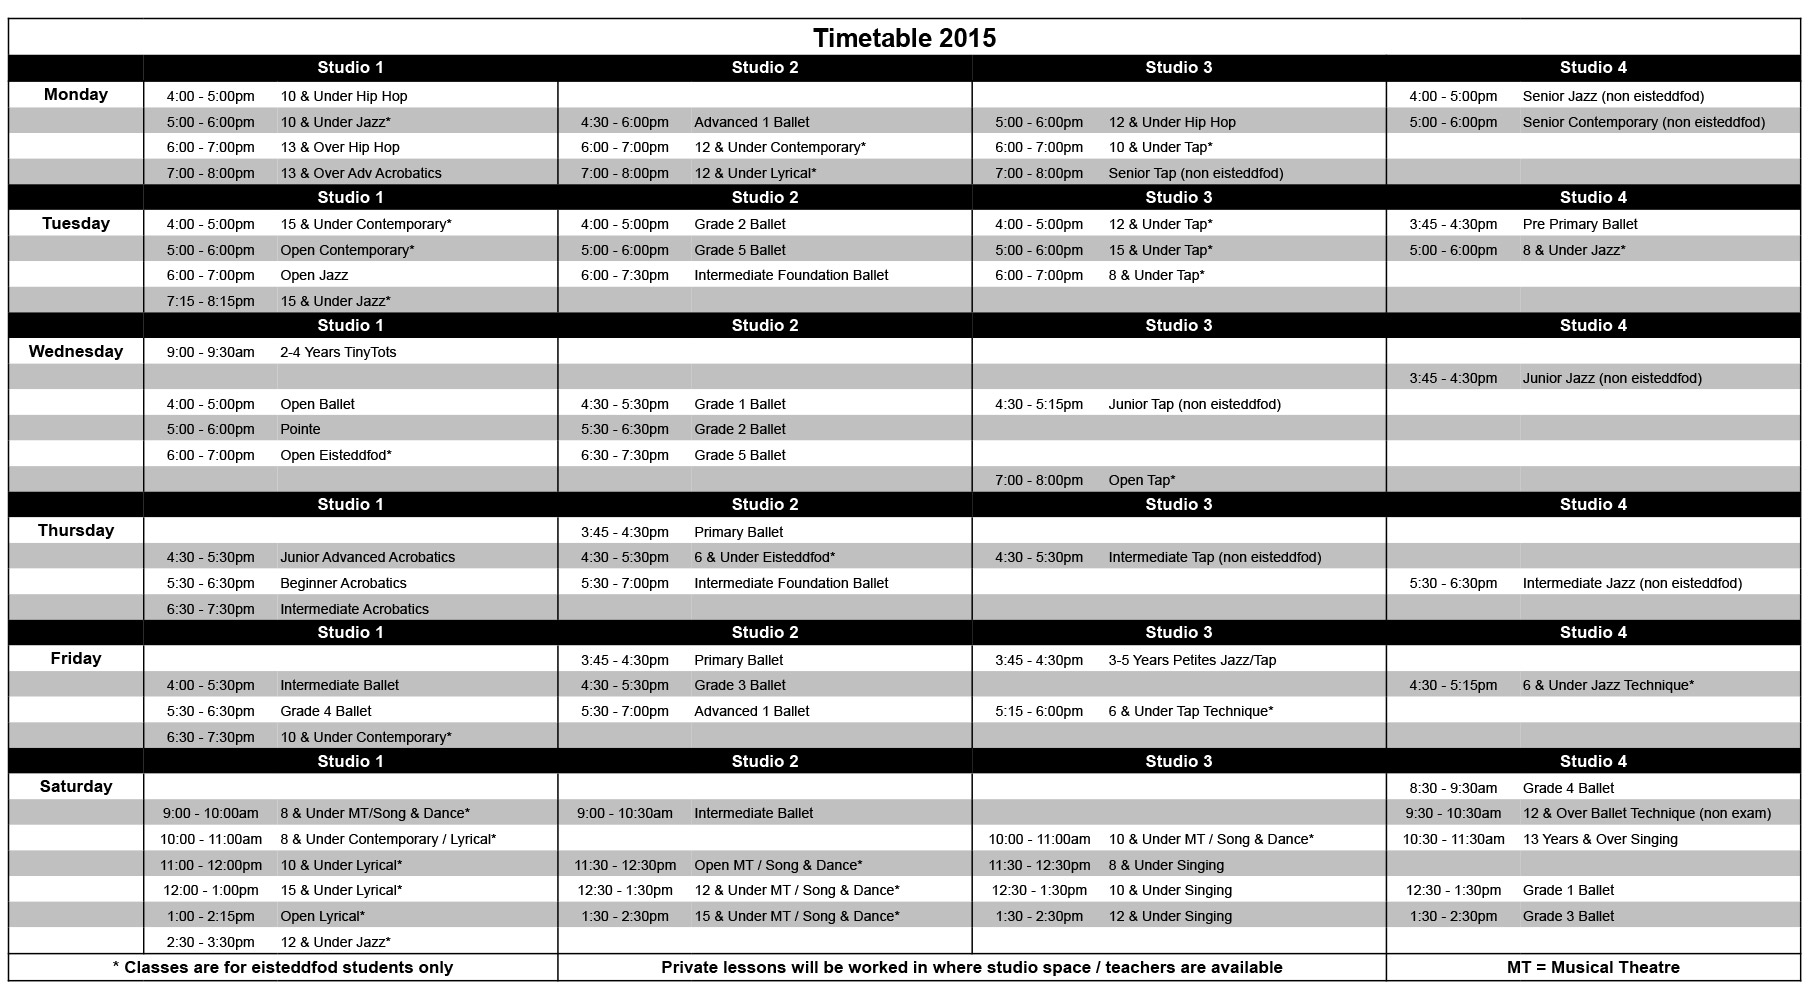 2015 Timetable